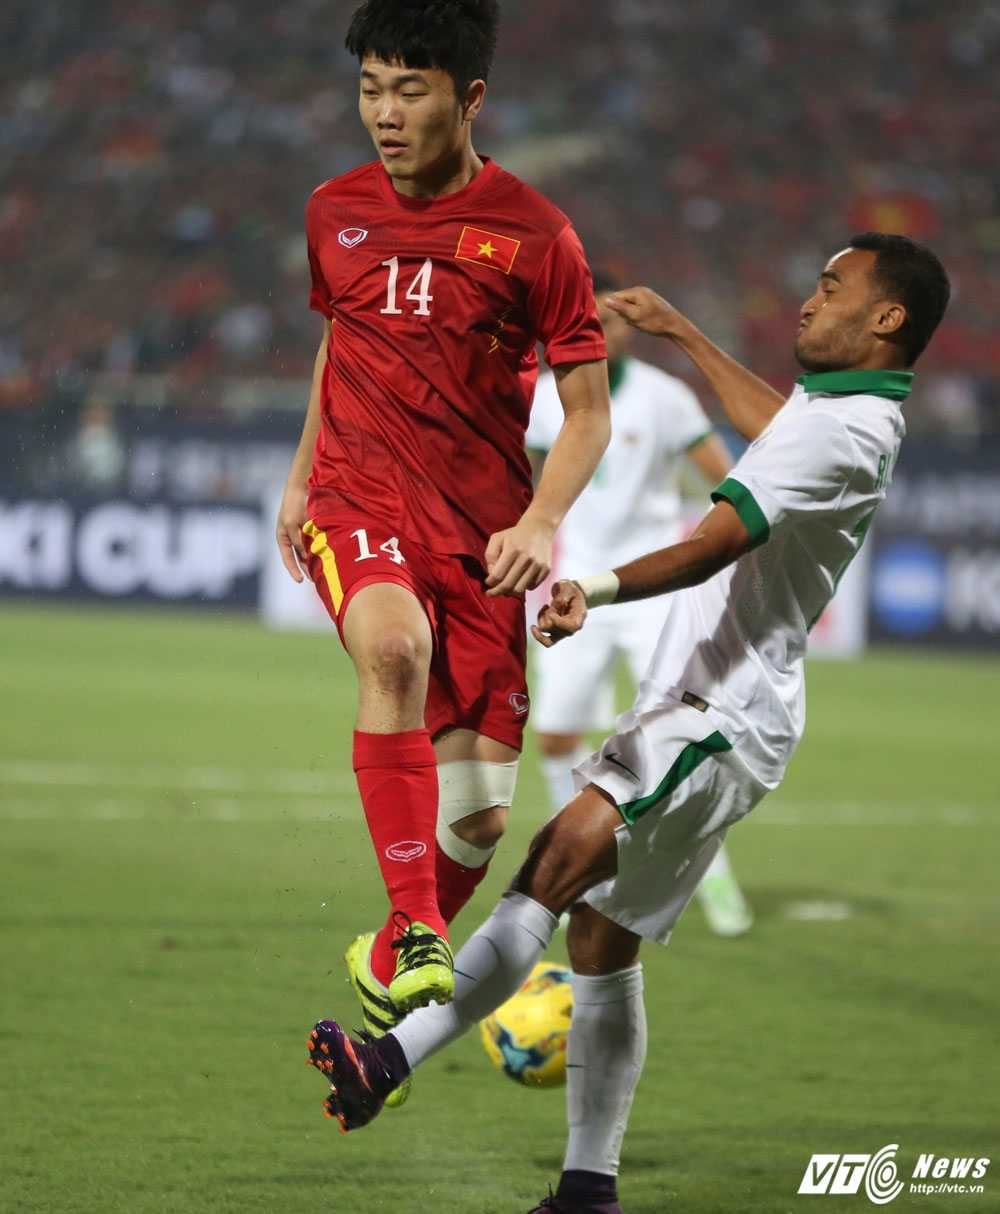 Truc tiep ban ket AFF Cup 2016: Viet Nam vs Indonesia hinh anh 11